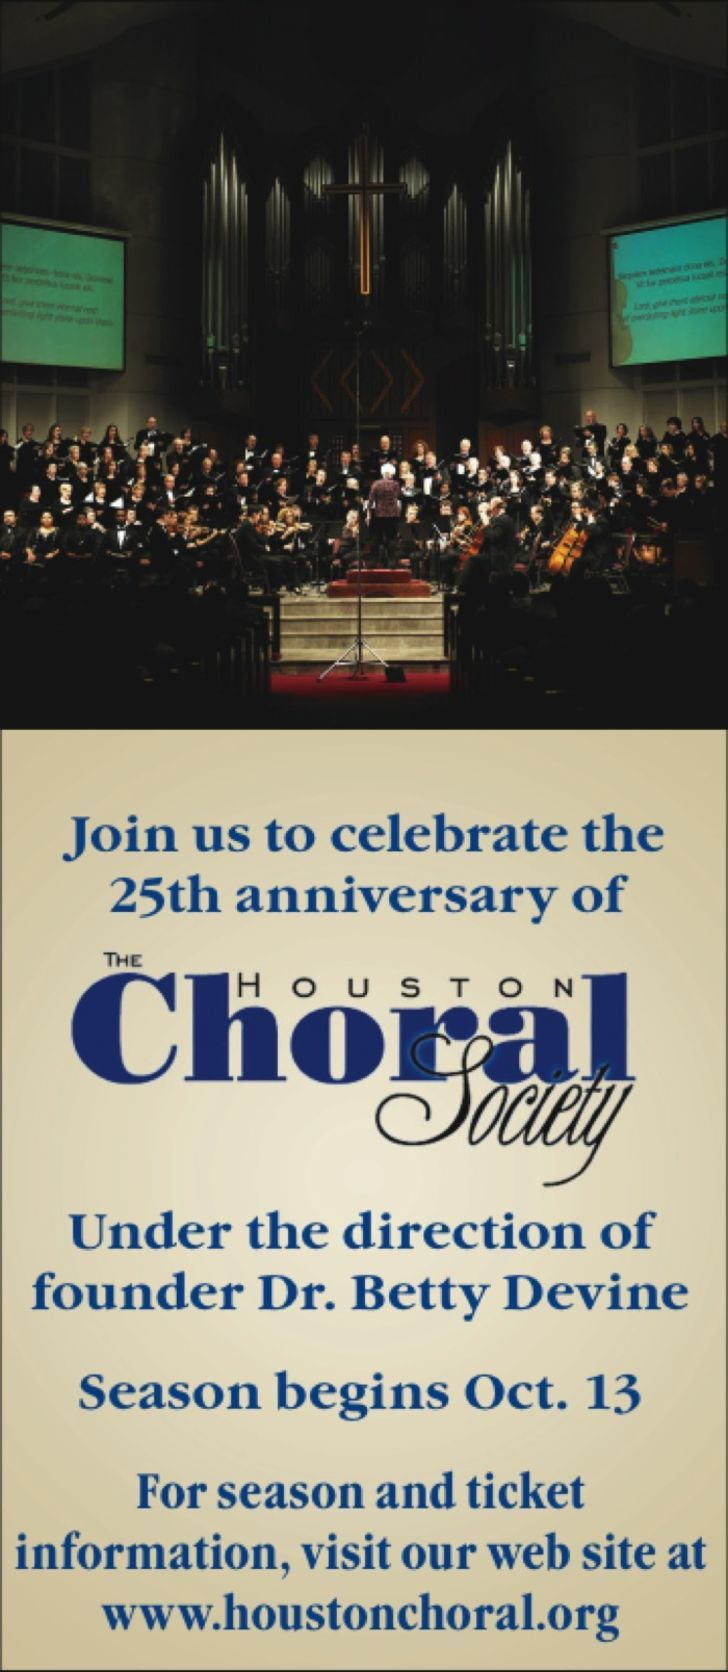 Houston Choral Society